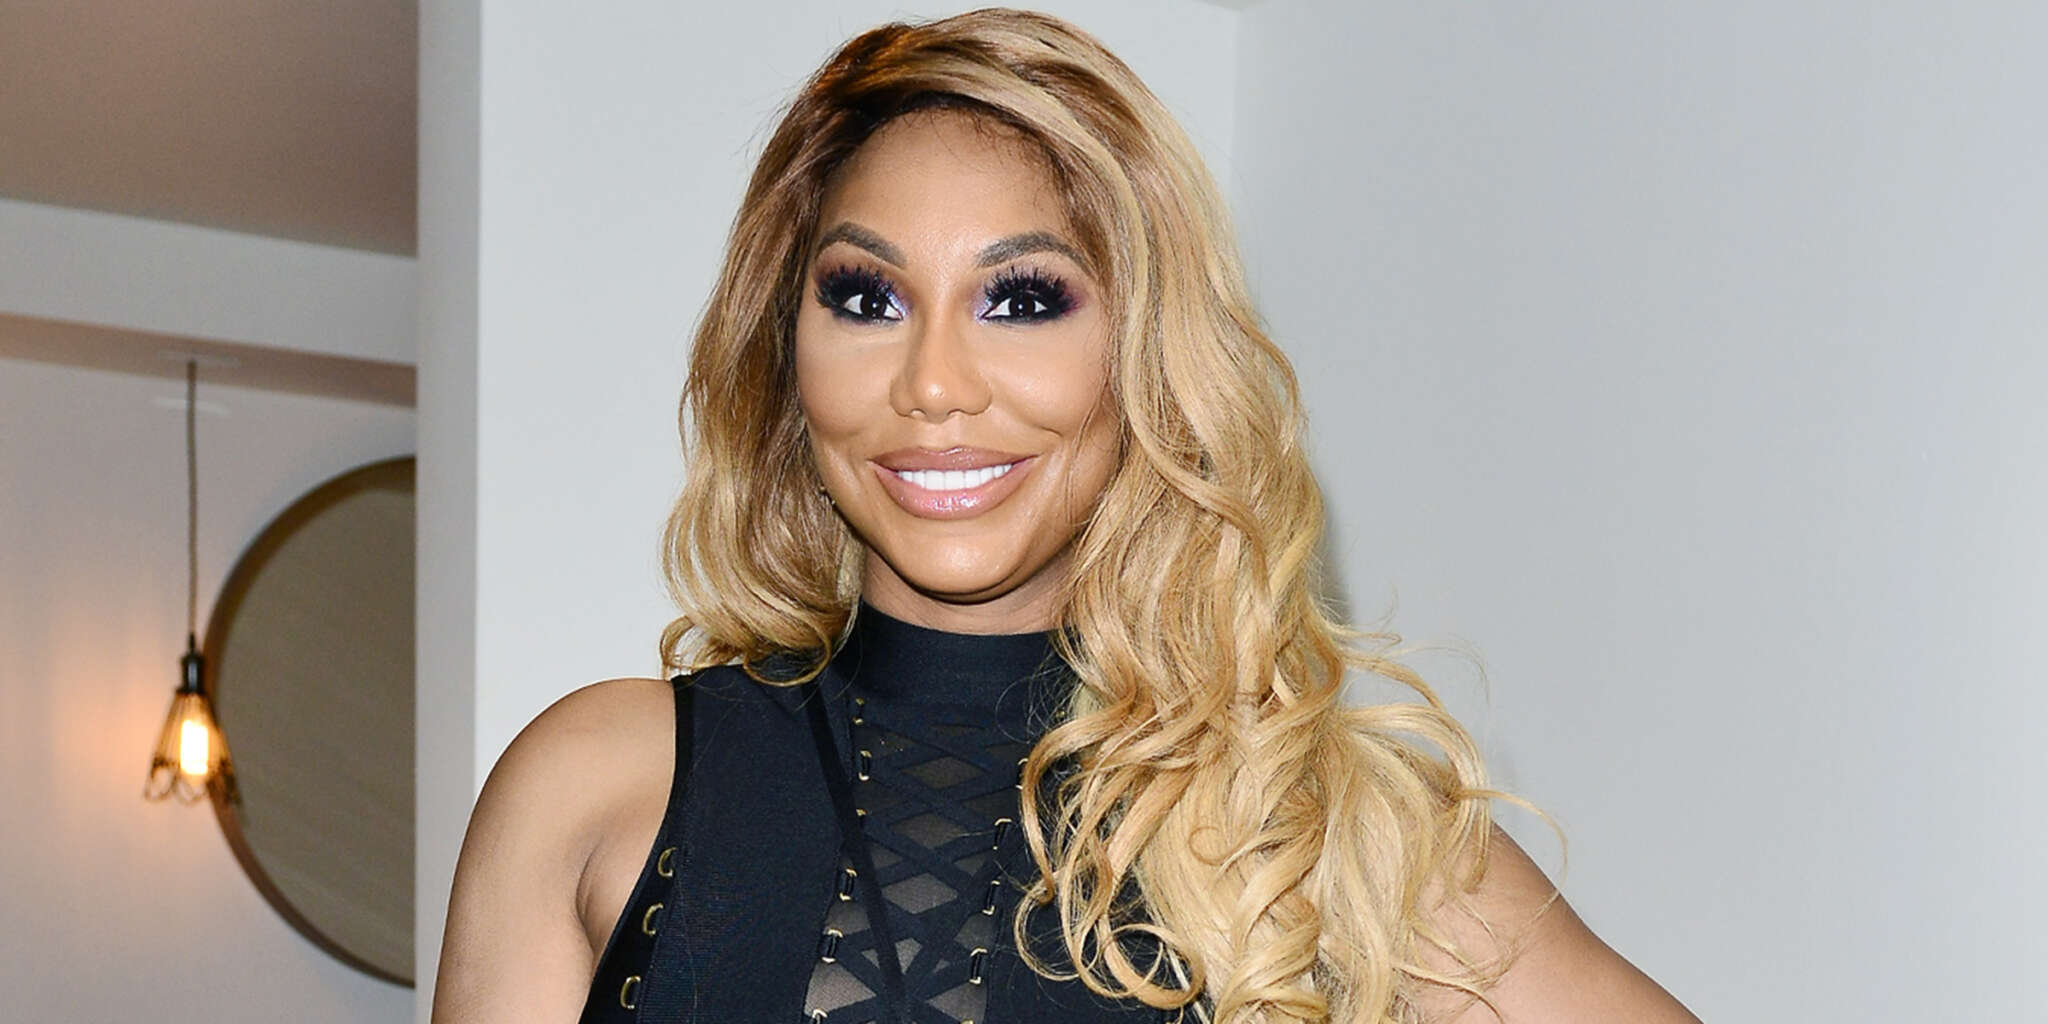 Tamar Braxton Tells Fans That It's Never Good To Fake The Funk In Life